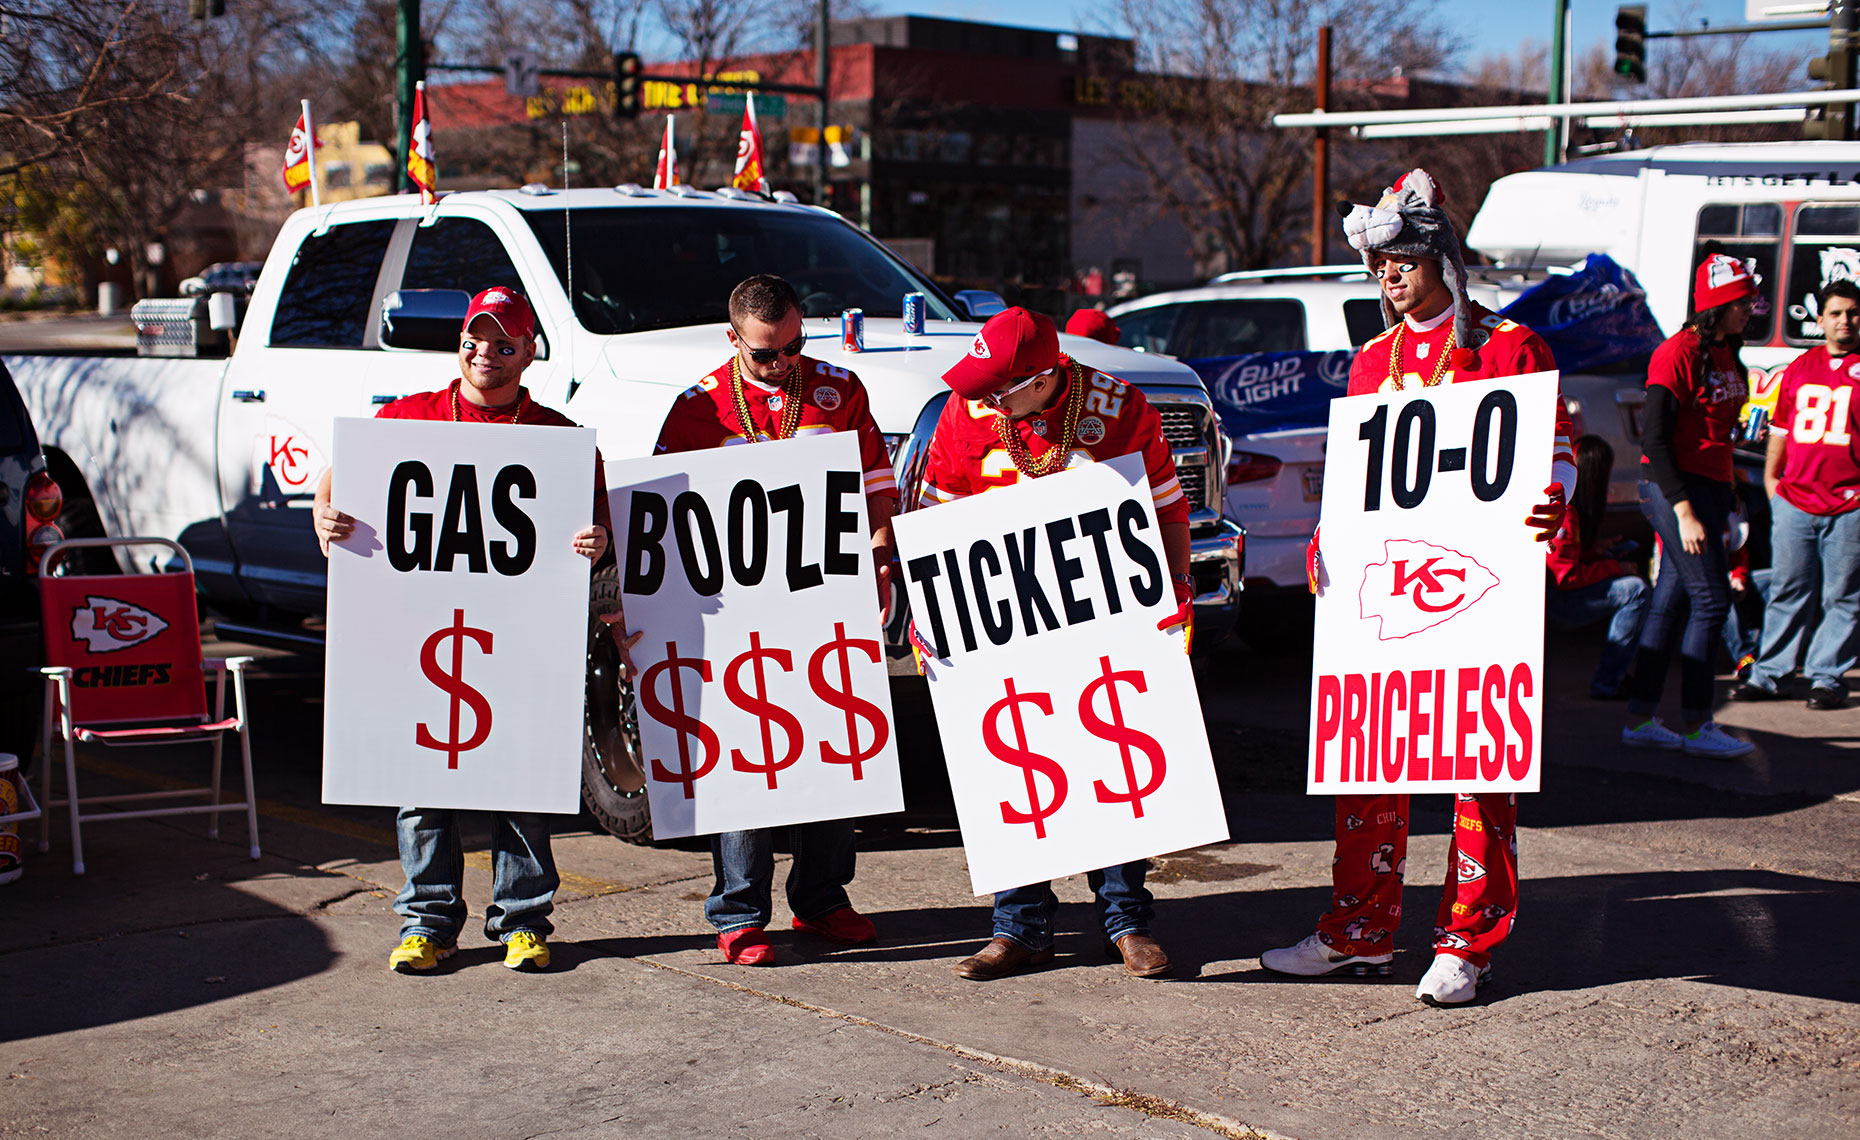 Sports Photographer STEVE BOYLE - Kansas City Chiefs Fans - NFL Football